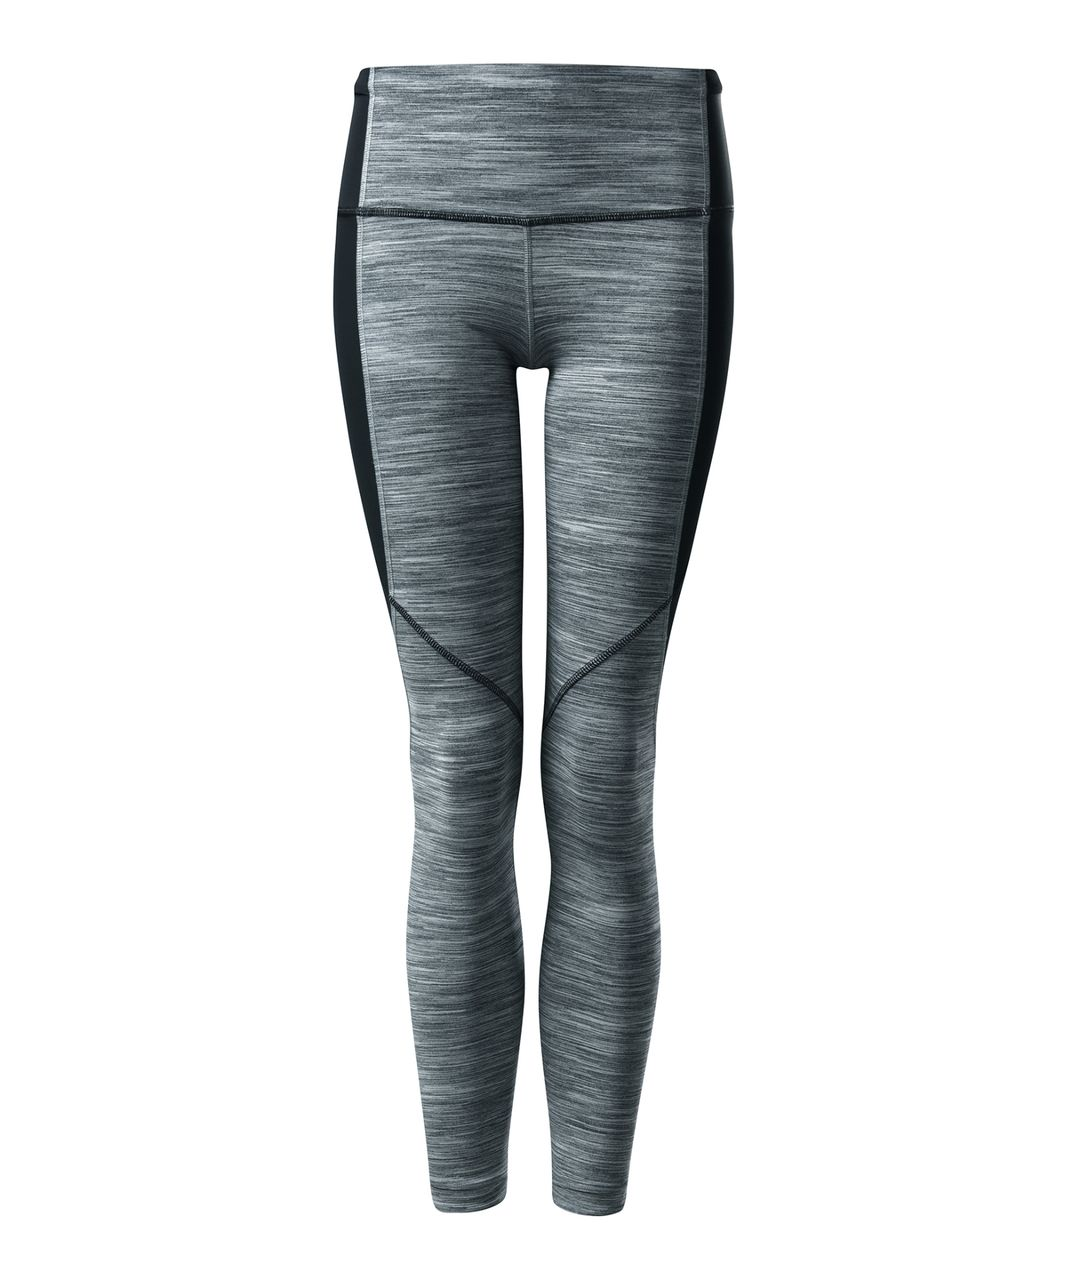 Lululemon Run With The Sun Tight - Space Dye Camo Seal Grey Deep Coal / Deep Coal